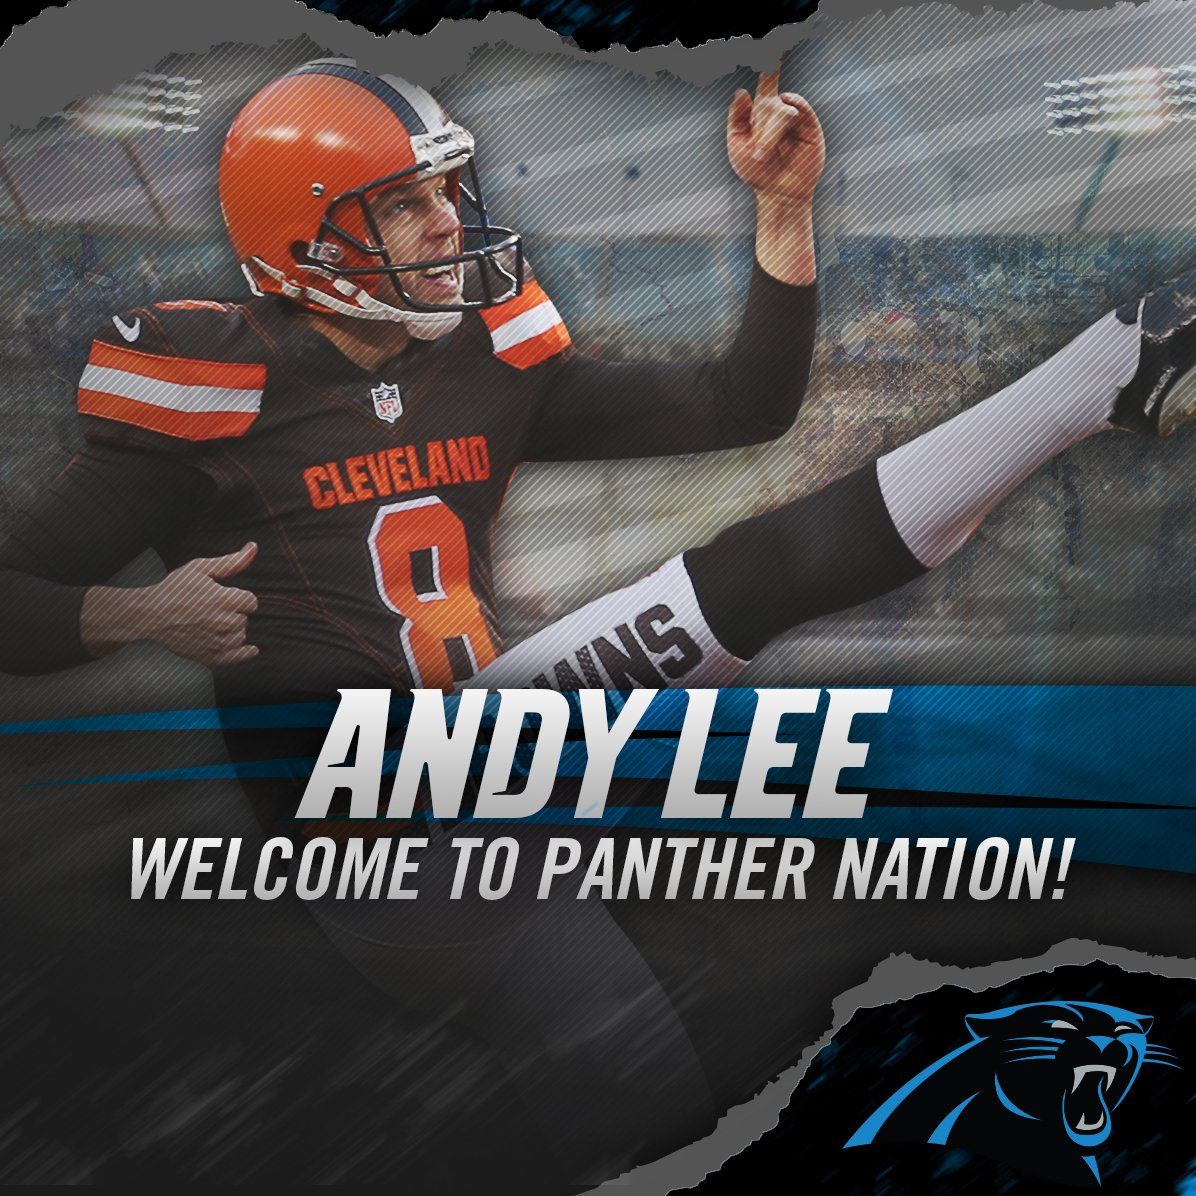 andy lee browns jersey